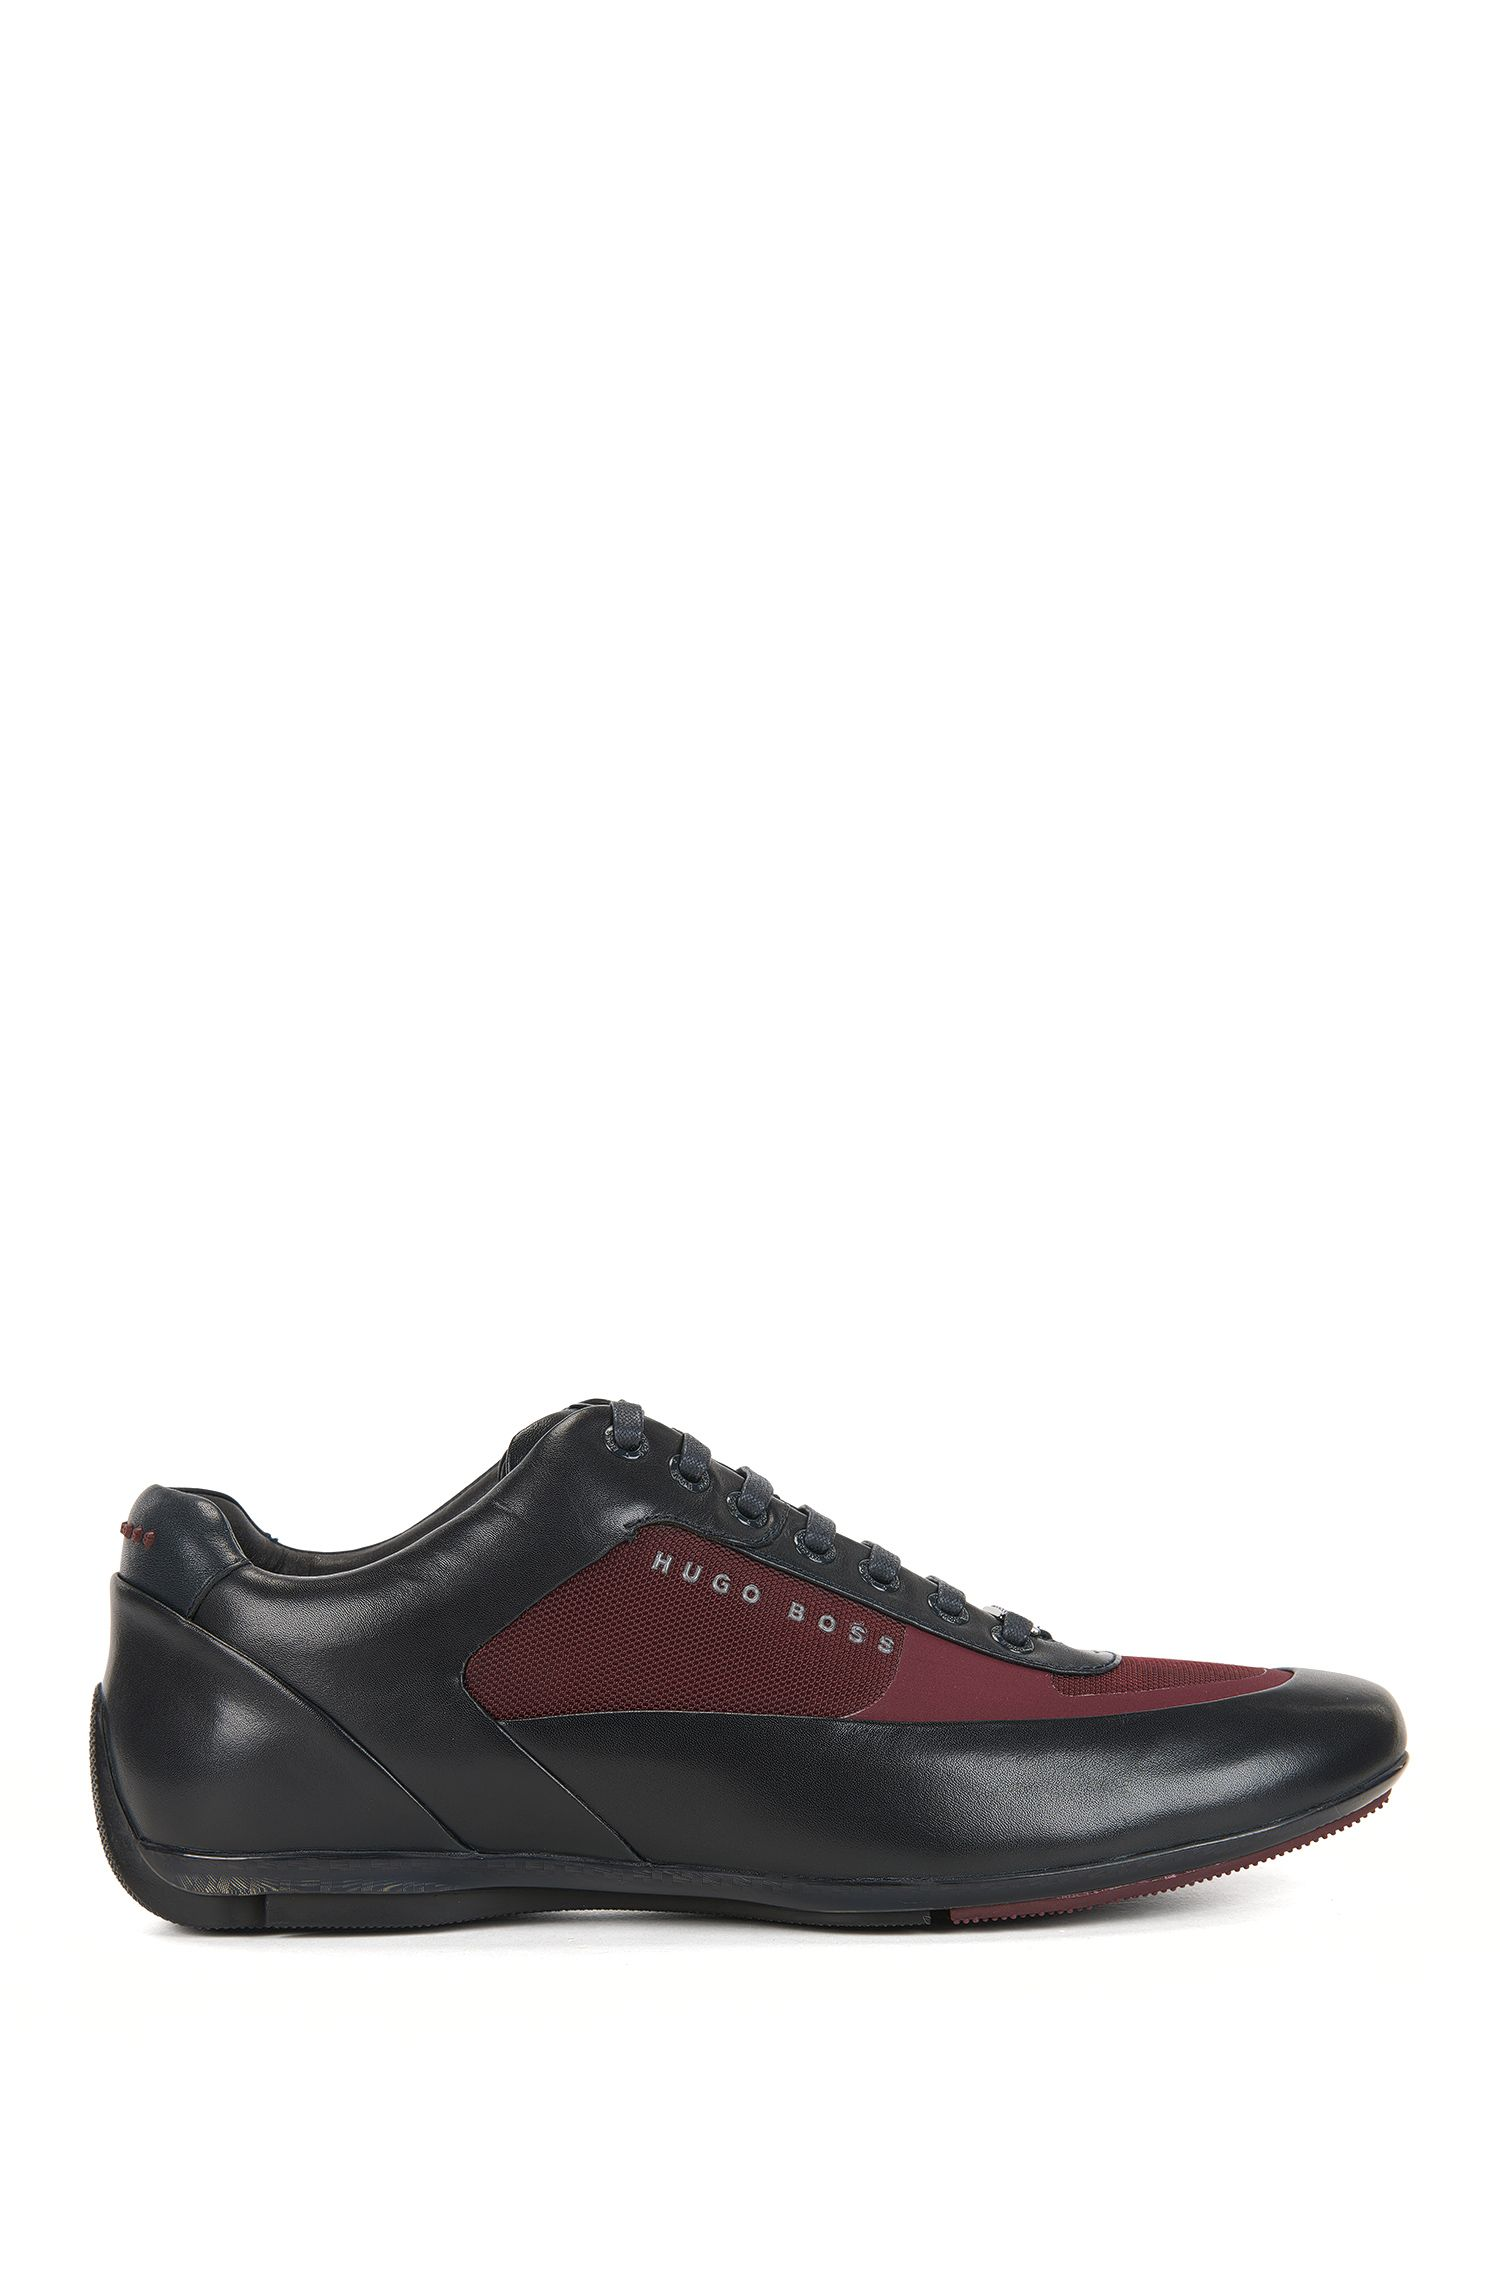 'HBRacing Lowp Itny' | Leather Sneakers